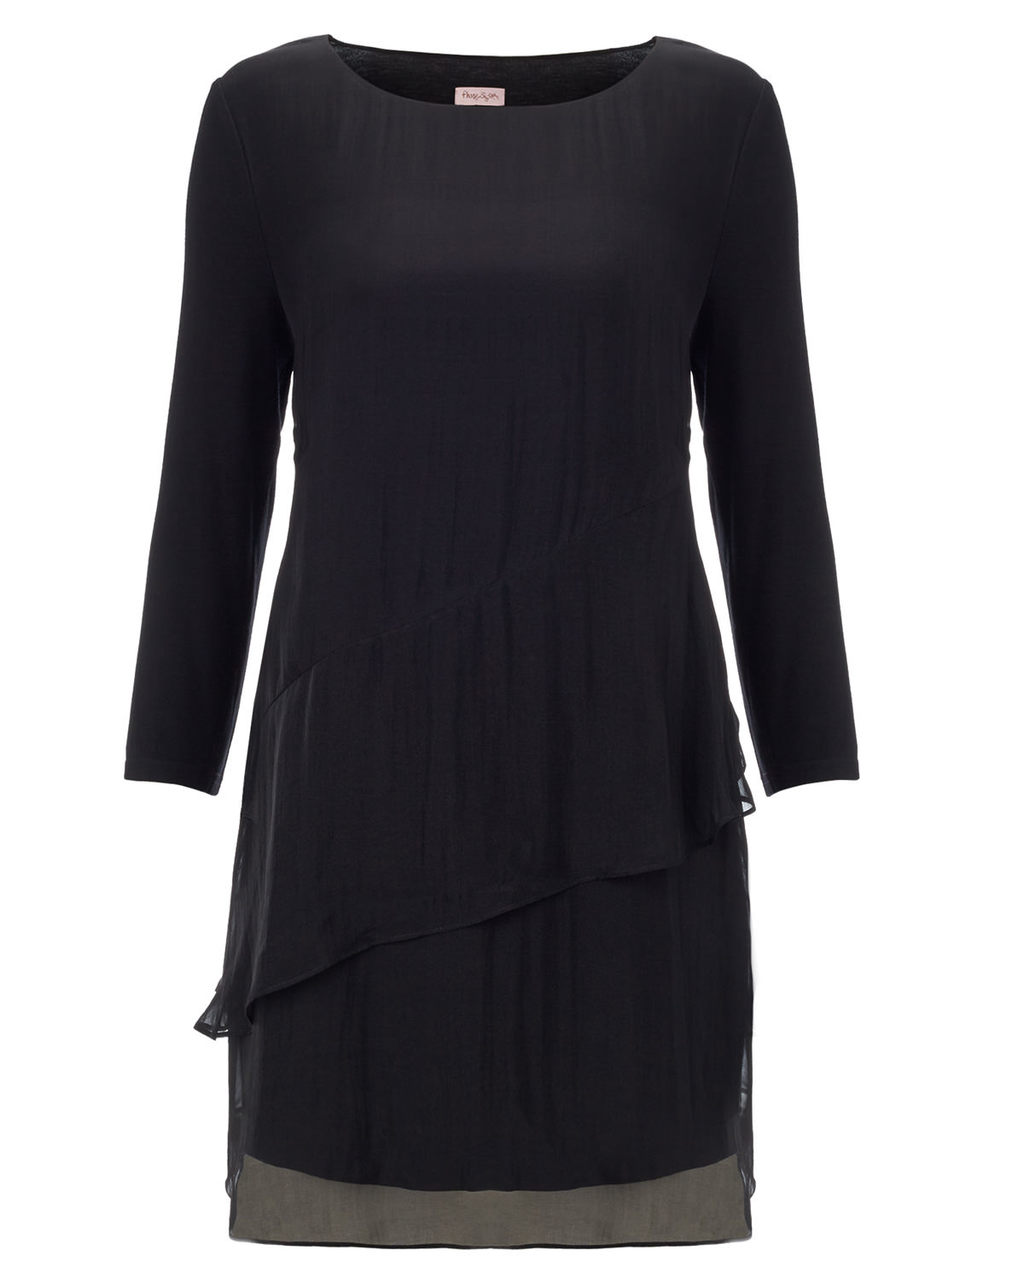 Jesinta Silk Tunic - pattern: plain; length: below the bottom; style: tunic; predominant colour: black; occasions: evening; fibres: silk - 100%; fit: body skimming; neckline: crew; hip detail: subtle/flattering hip detail; sleeve length: long sleeve; sleeve style: standard; pattern type: fabric; texture group: jersey - stretchy/drapey; season: a/w 2015; wardrobe: event